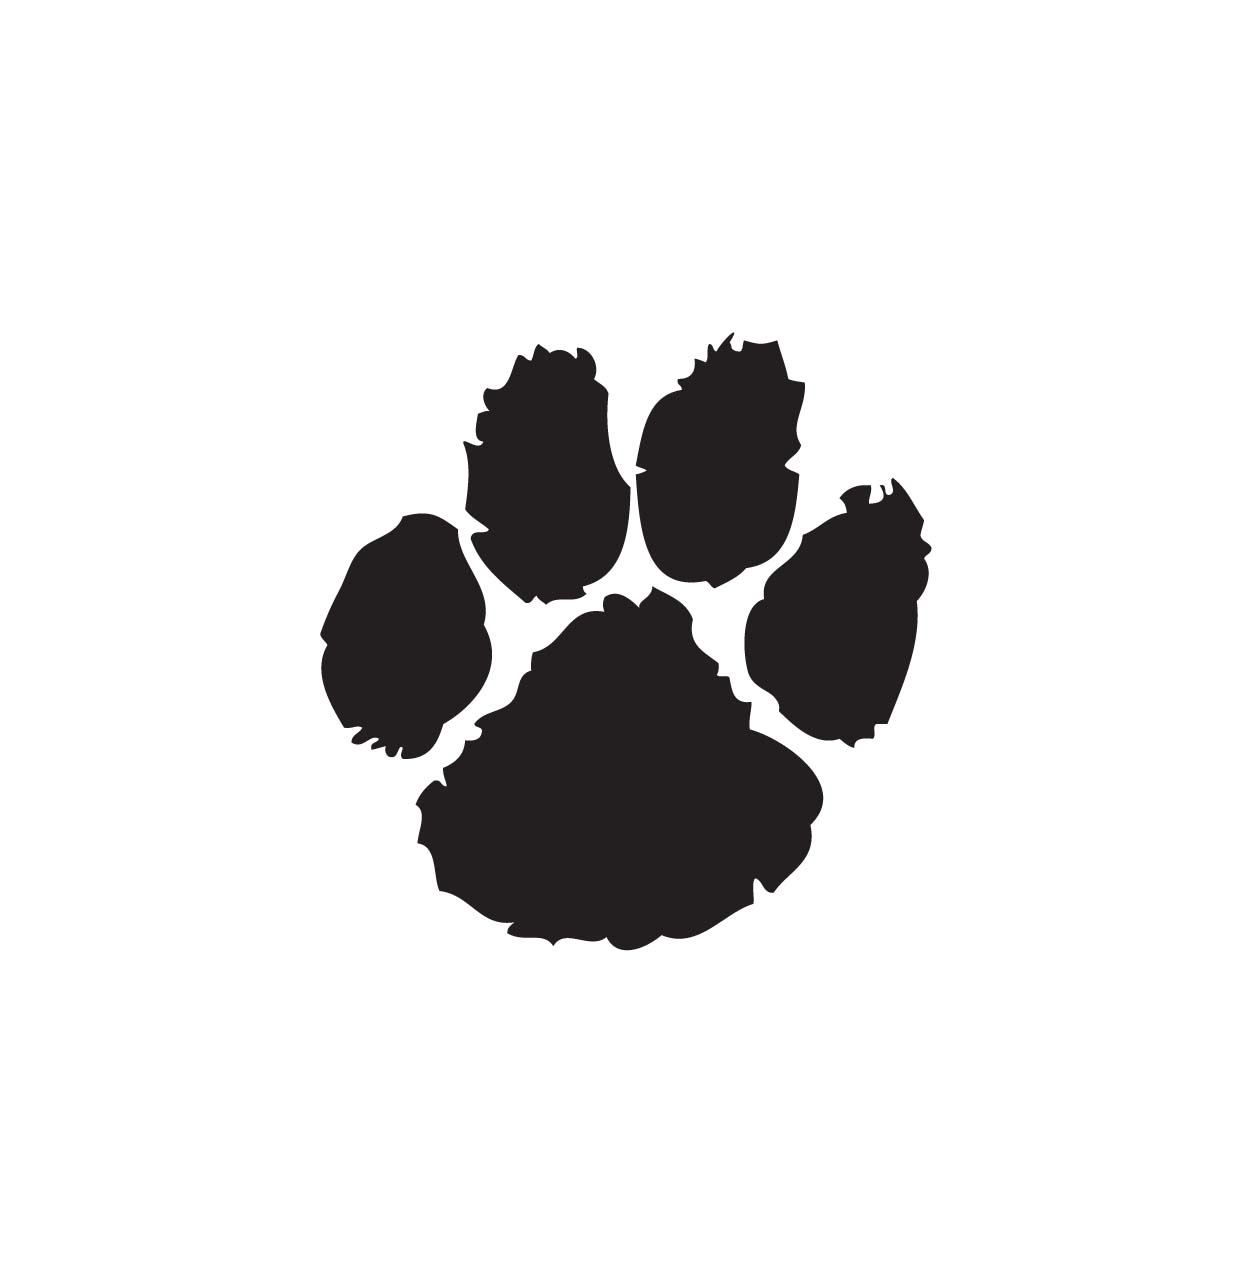 Paw print small. Pawprint clipart free download